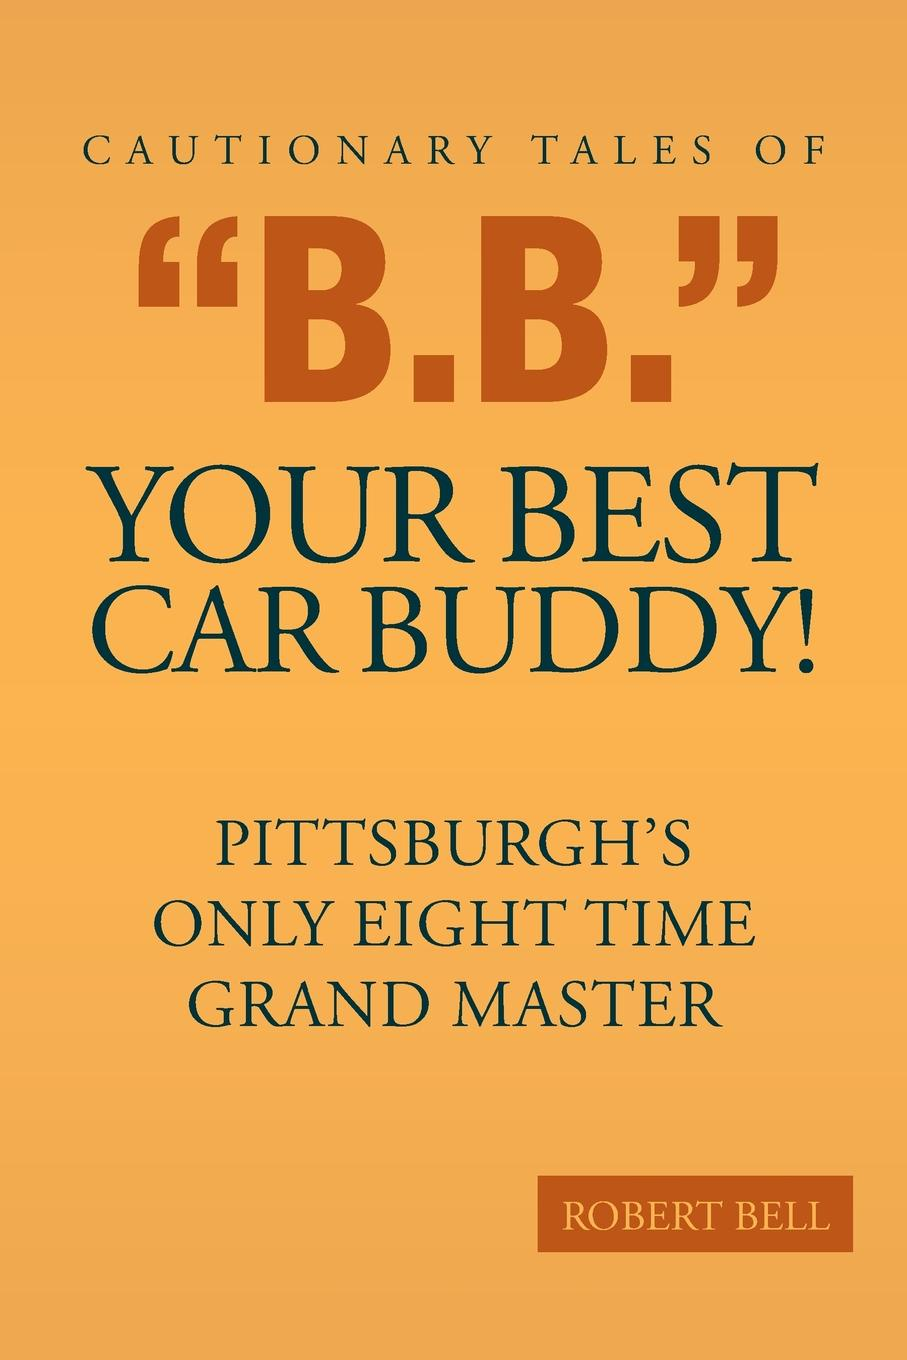 Robert Bell Cautionary Tales of B.B. Your Best Car Buddy.. Pittsburgh.s Only Eight Time Grand Master 20pcs lot tps61221dckr tps61221